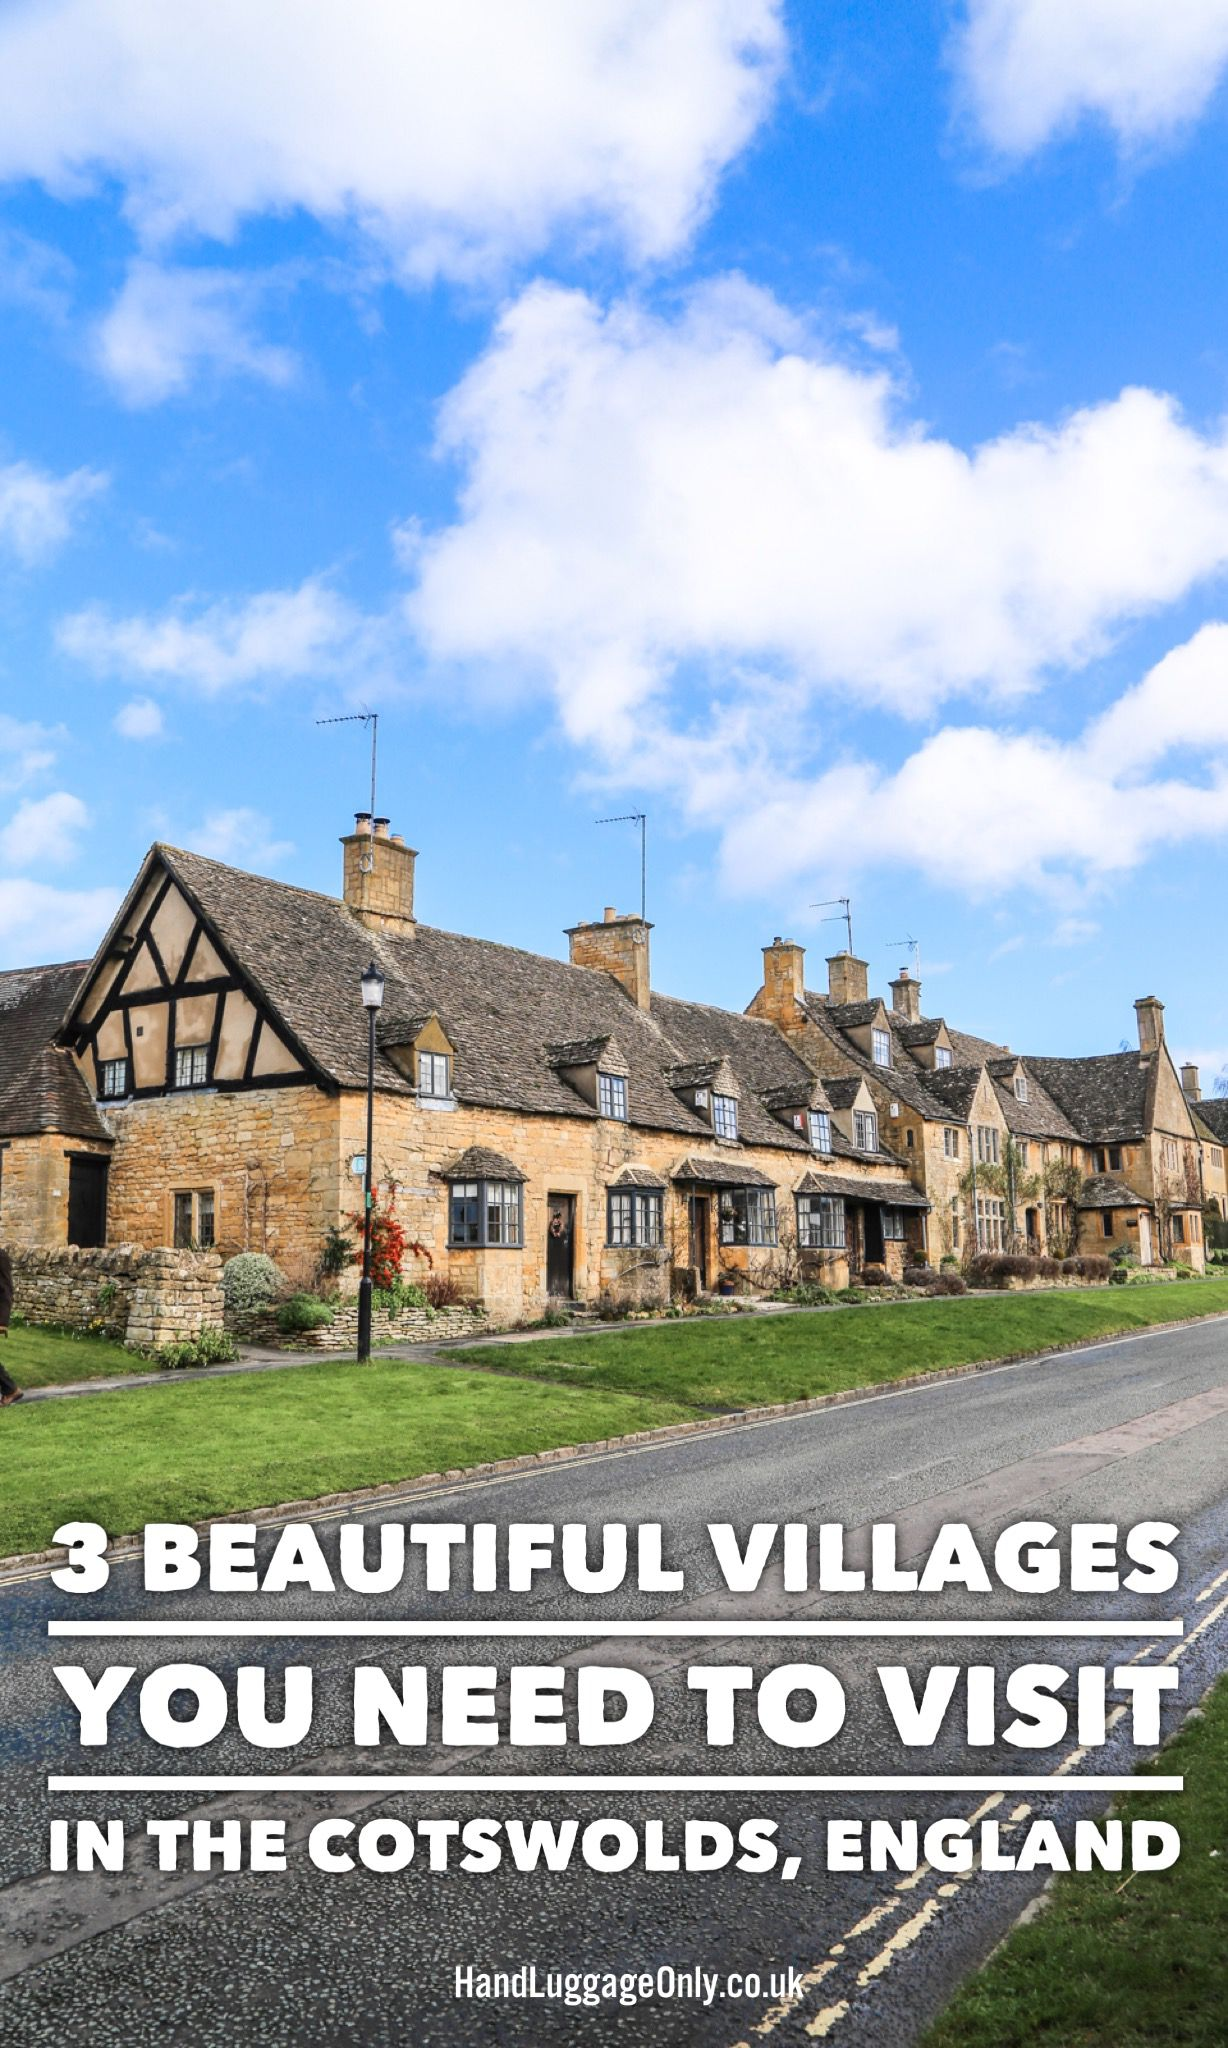 3 Neighbouring Villages & Towns You Need To Visit In The Cotswolds, England  (2)